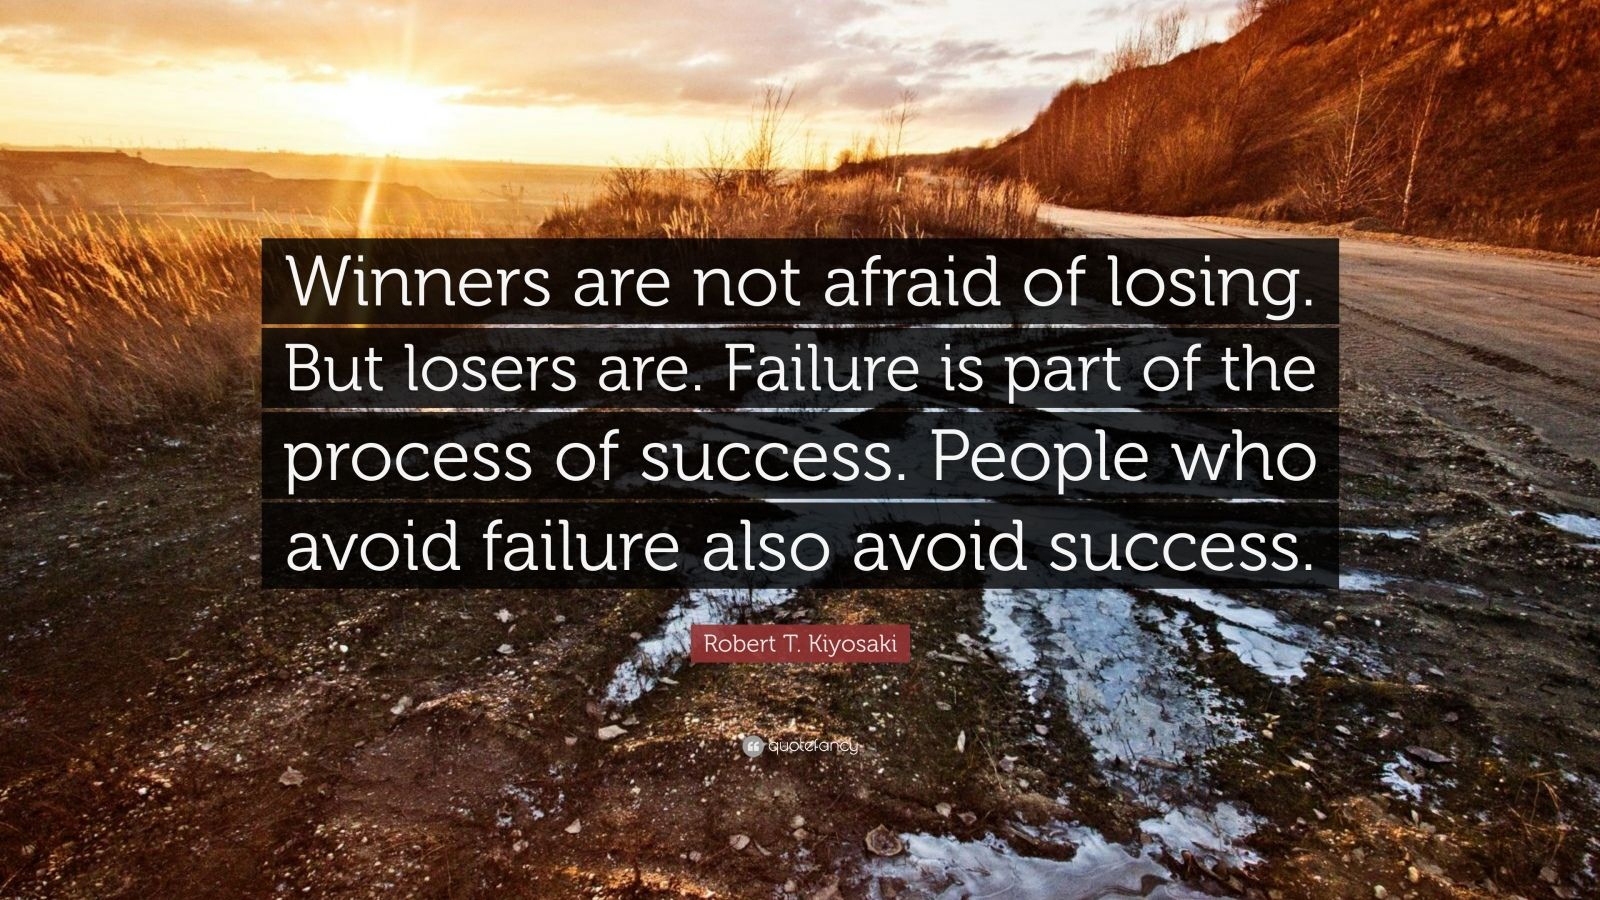 "Robert T. Kiyosaki Quote: ""Winners are not afraid of losing. But losers are. Failure is part of the process of success. People who avoid failure also avoid success."""